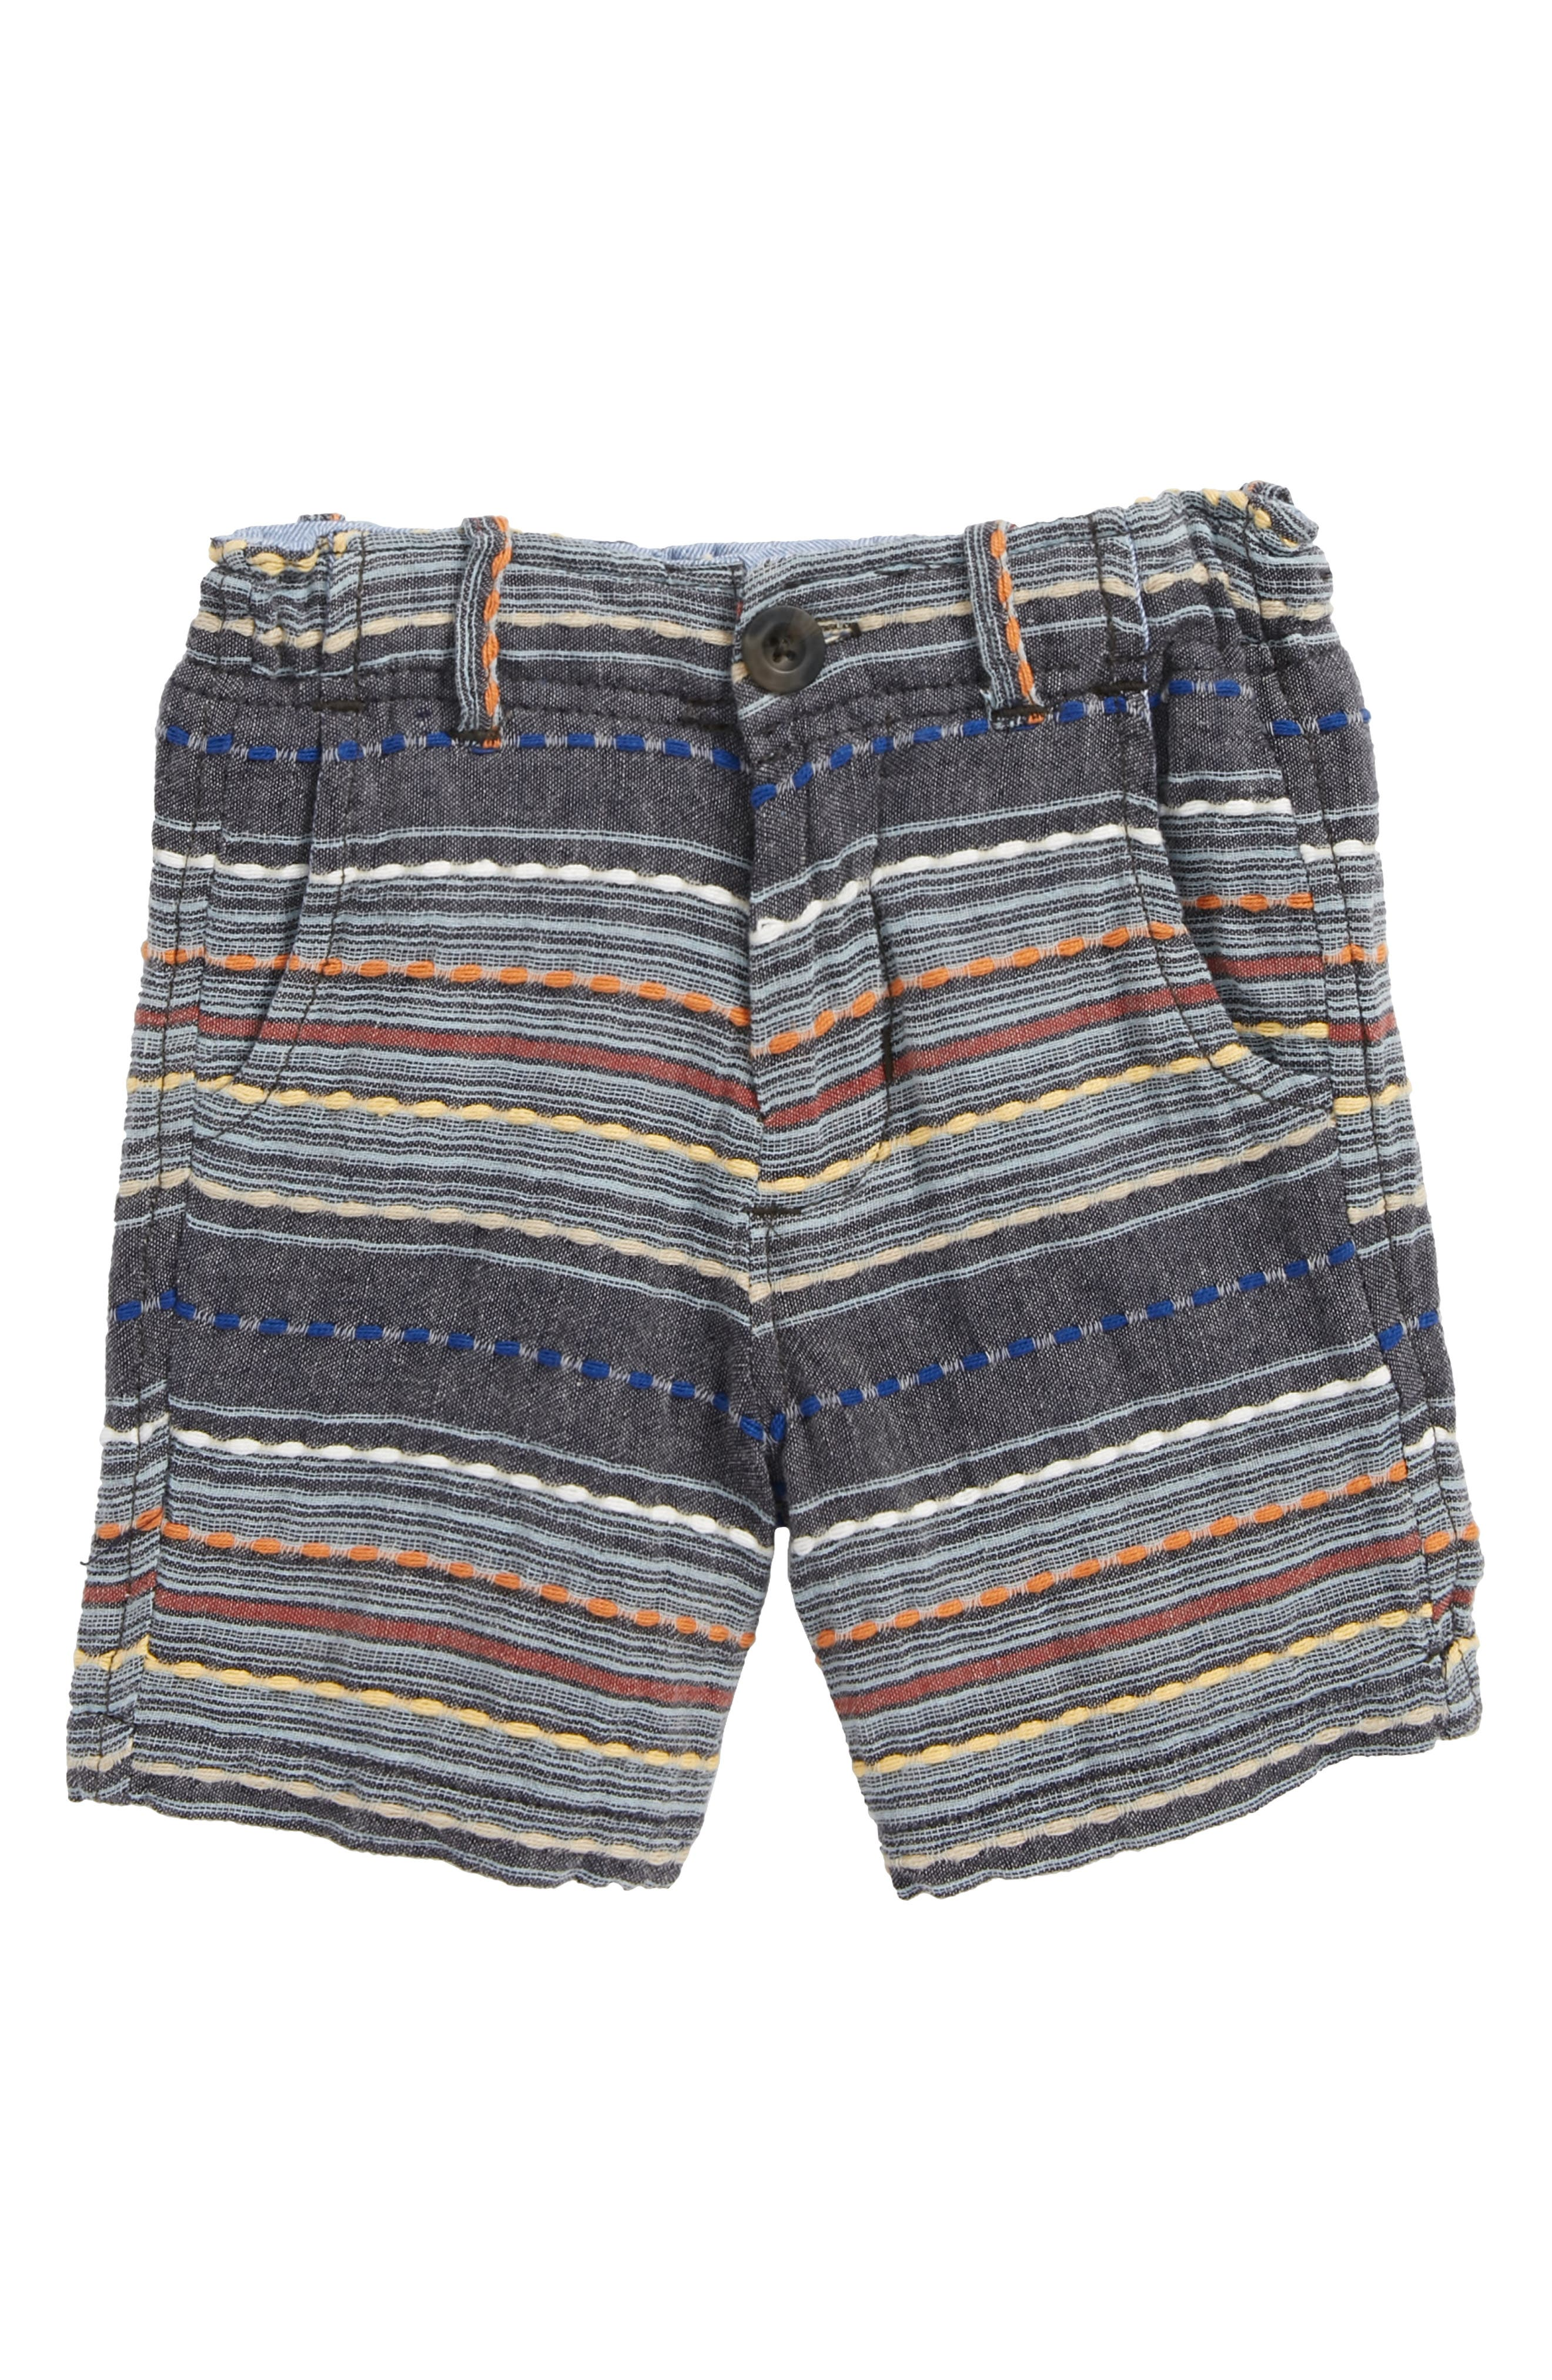 Wyatt Shorts,                             Main thumbnail 1, color,                             Charcoal